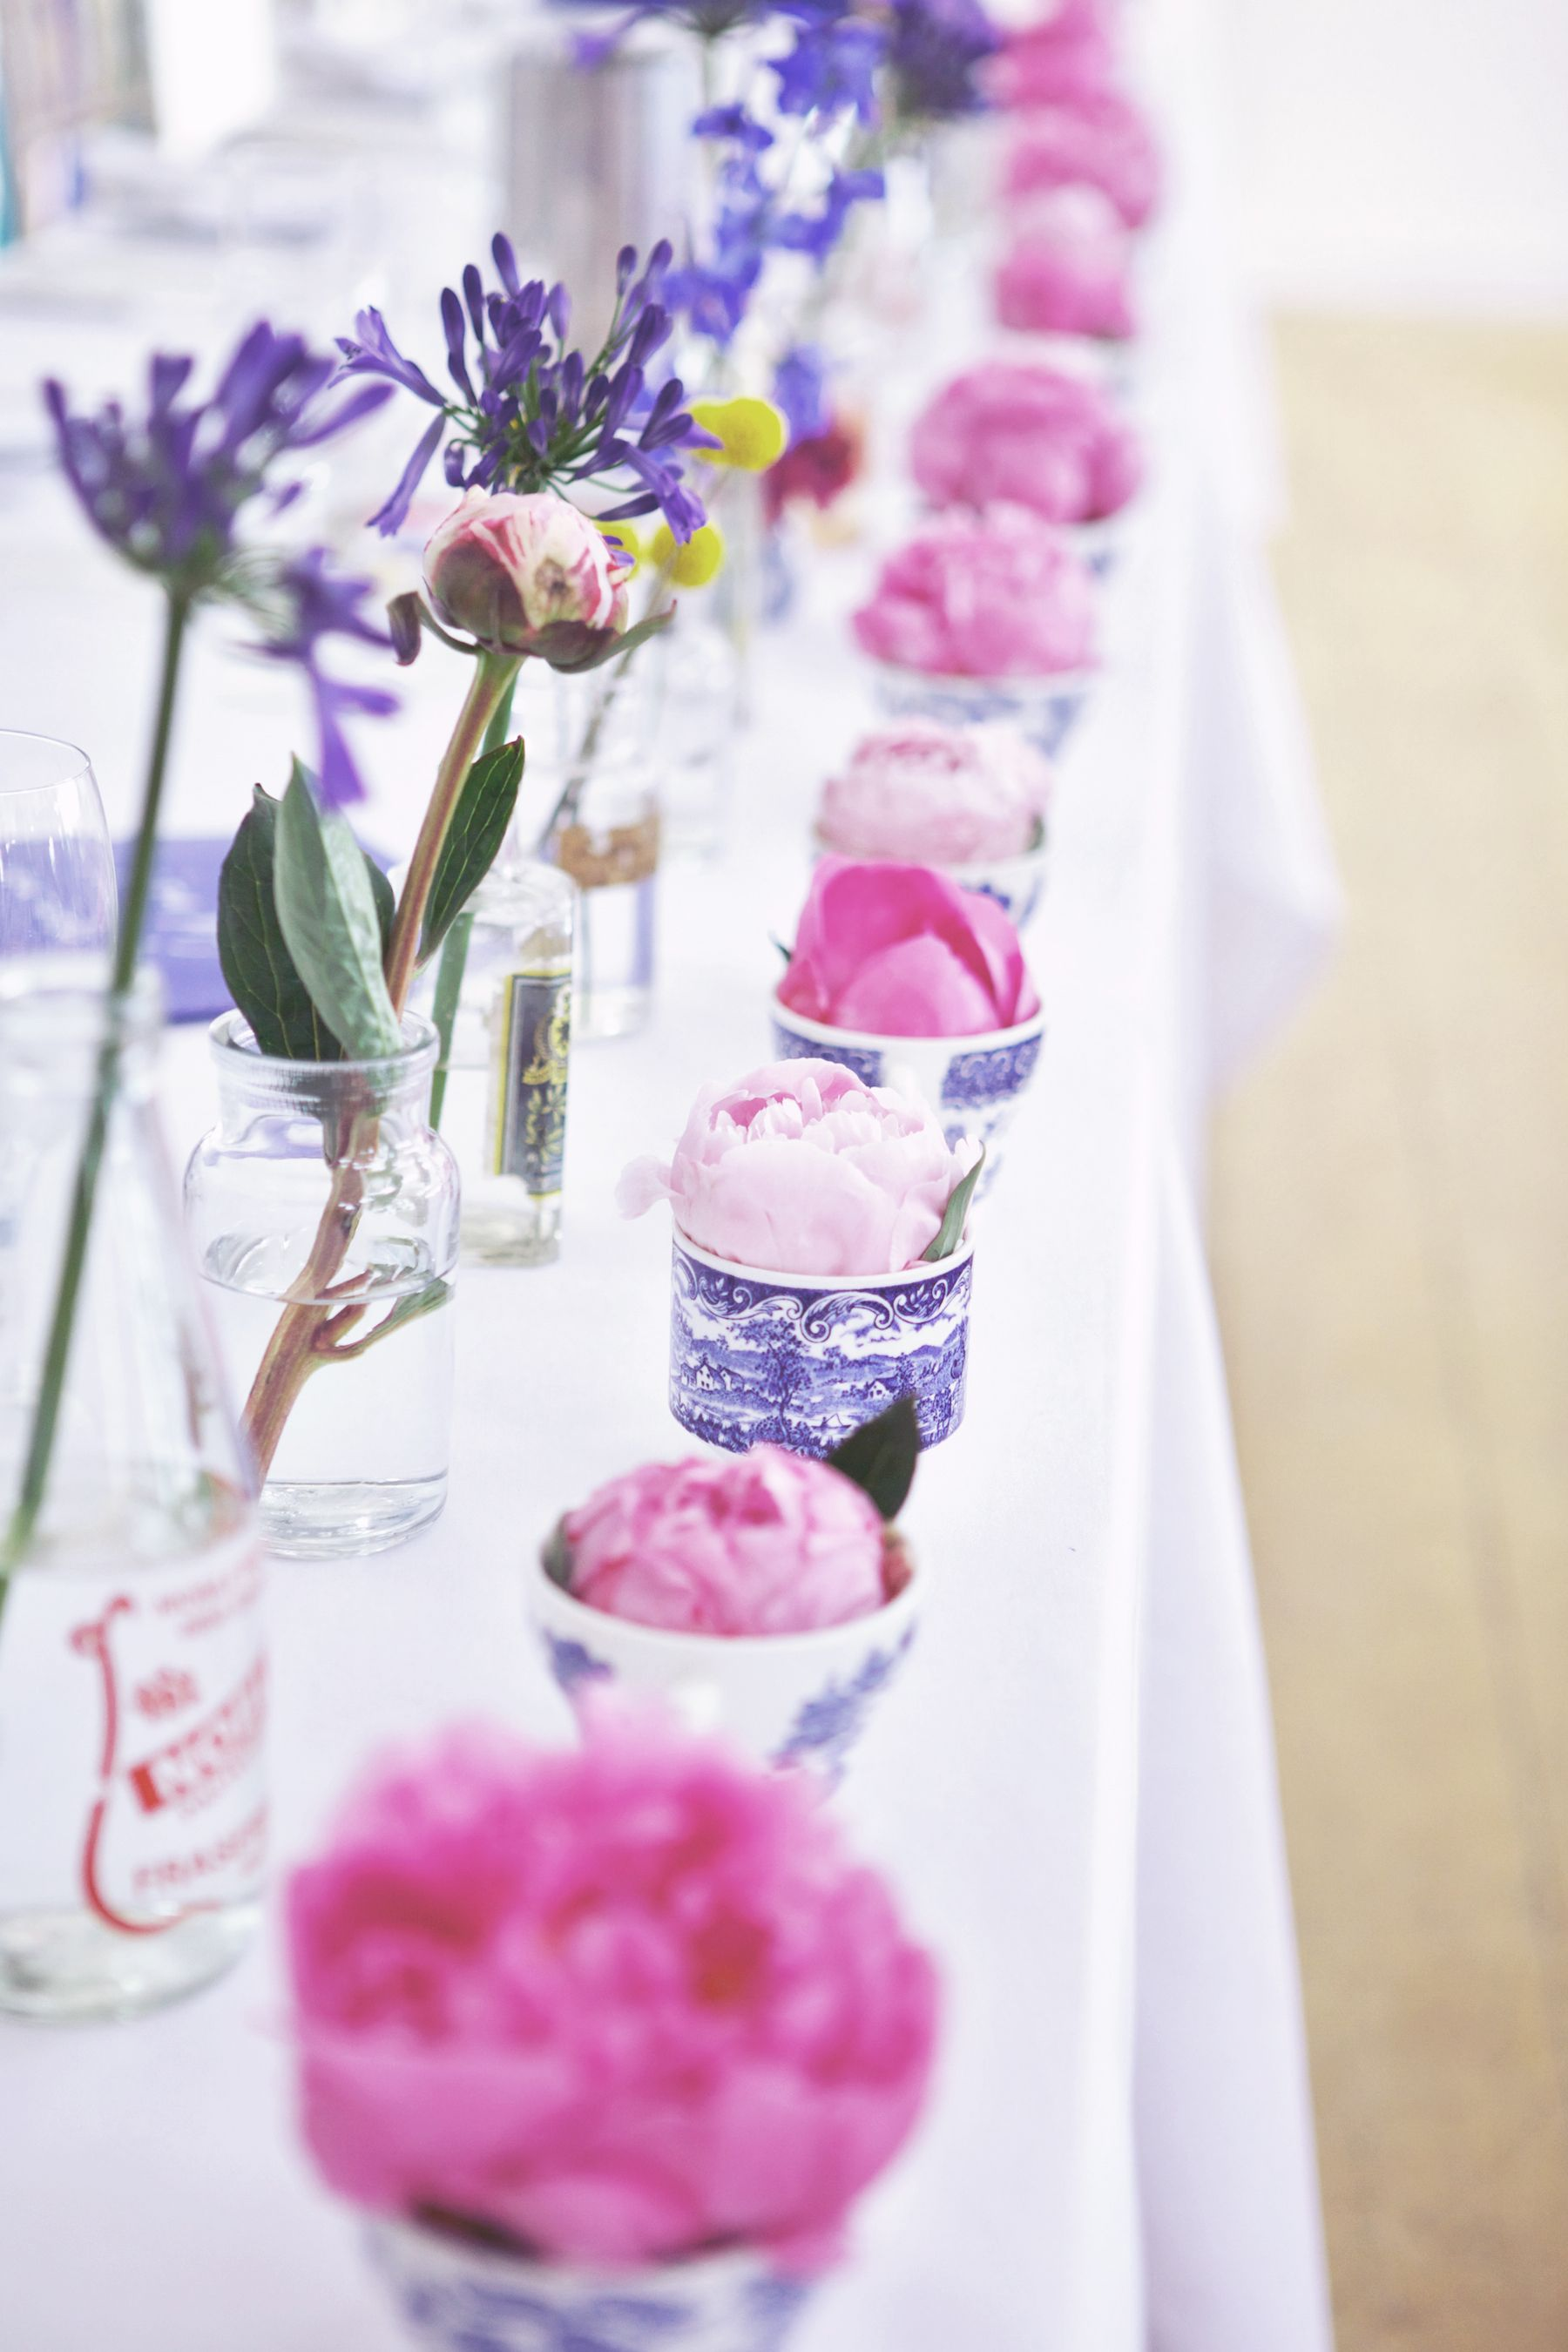 Peonies in Tea Cups Lisa Devlin http://devlinphotos.co.uk